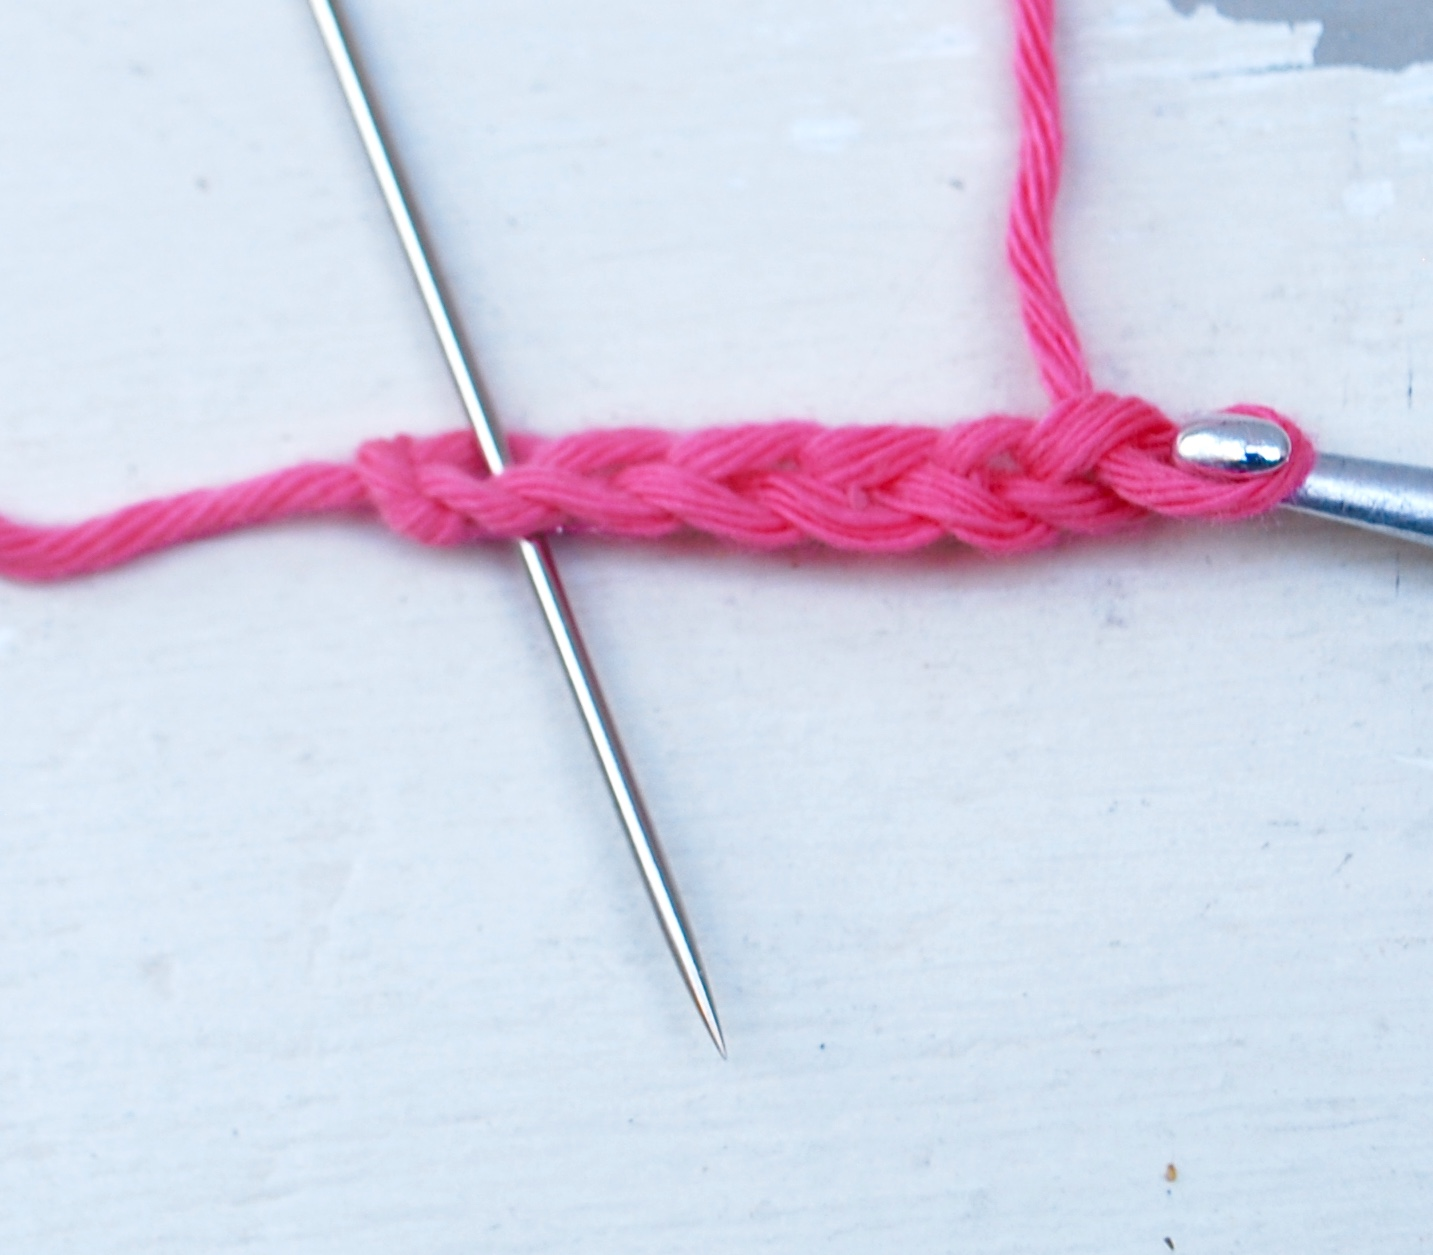 Chain 6 and join with a slip stitch into the first chain (as shown)to make a loop.